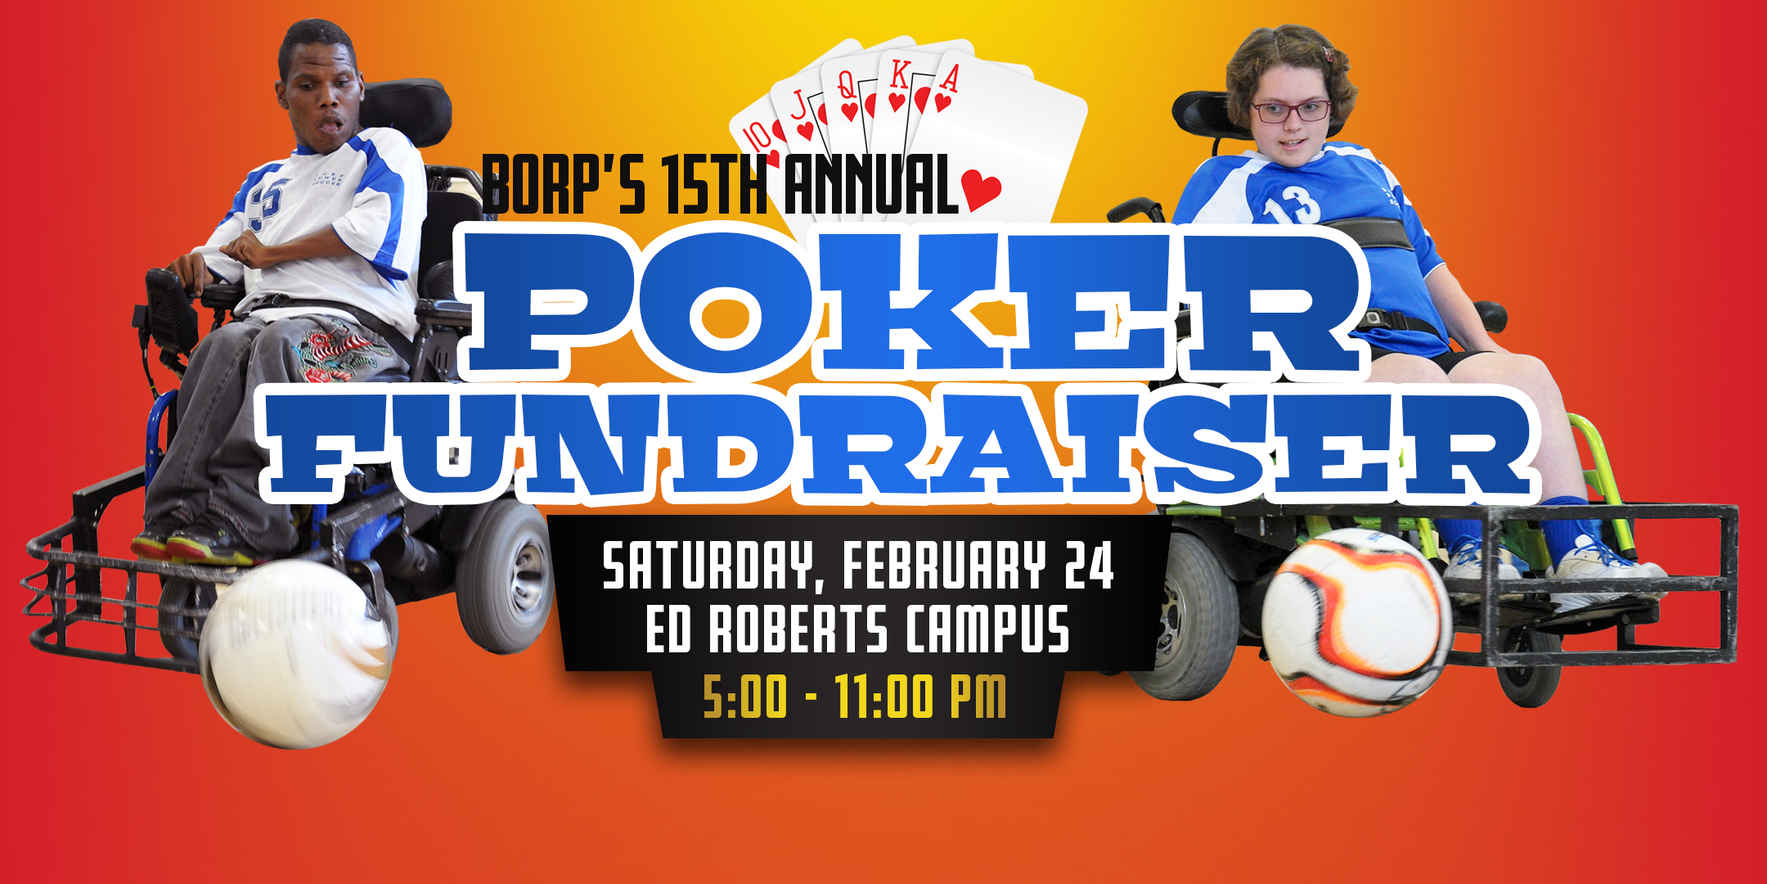 BORP's 15th Annual Poker Fundraiser image